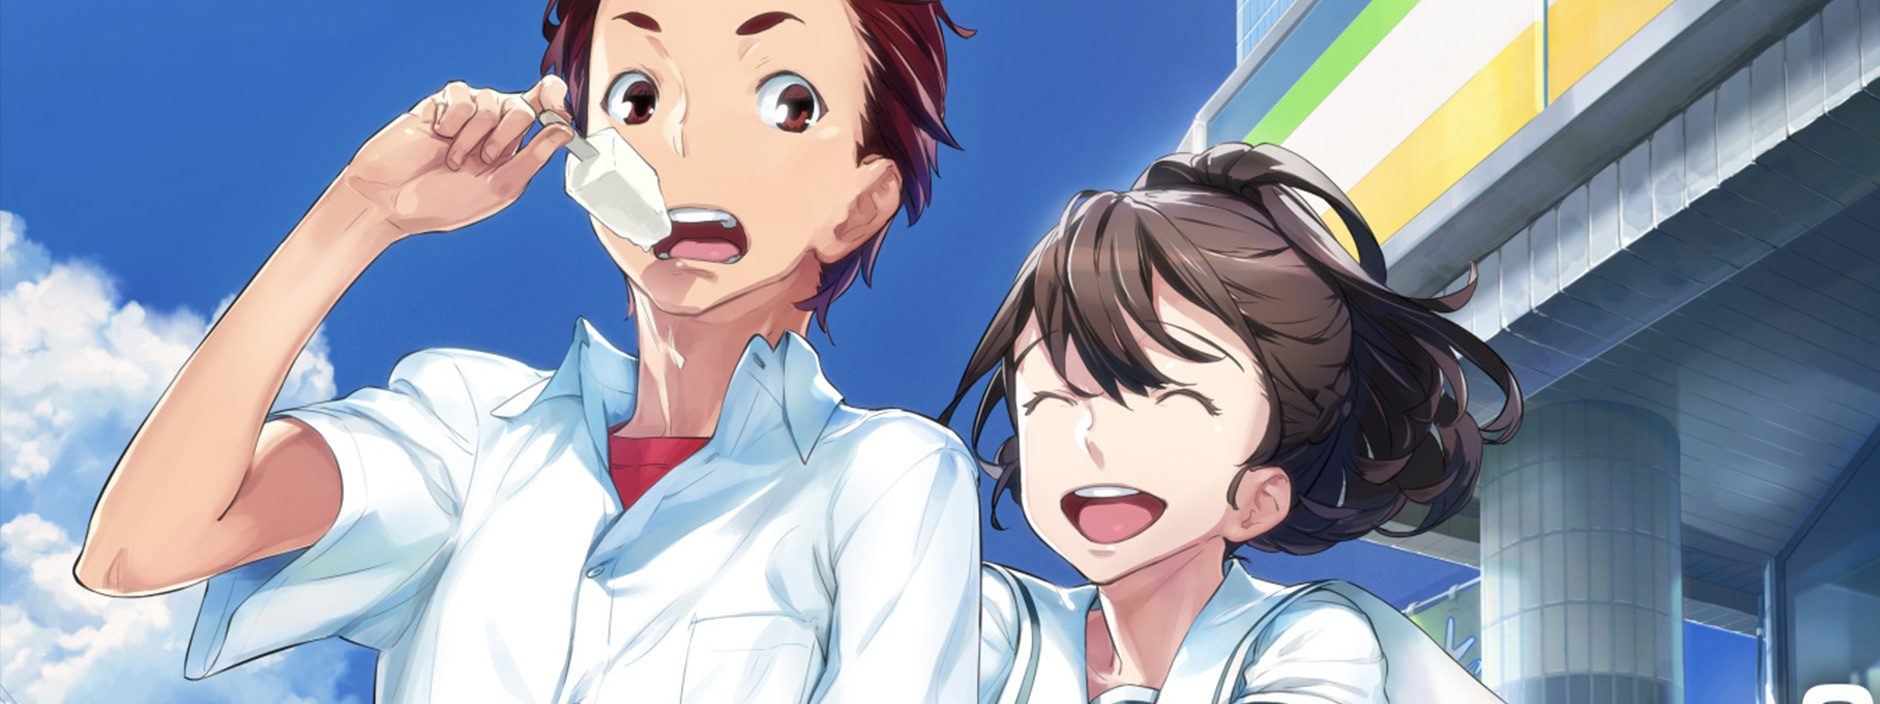 Get your first look at three new Spike Chunsoft titles announced at Anime Expo 2019